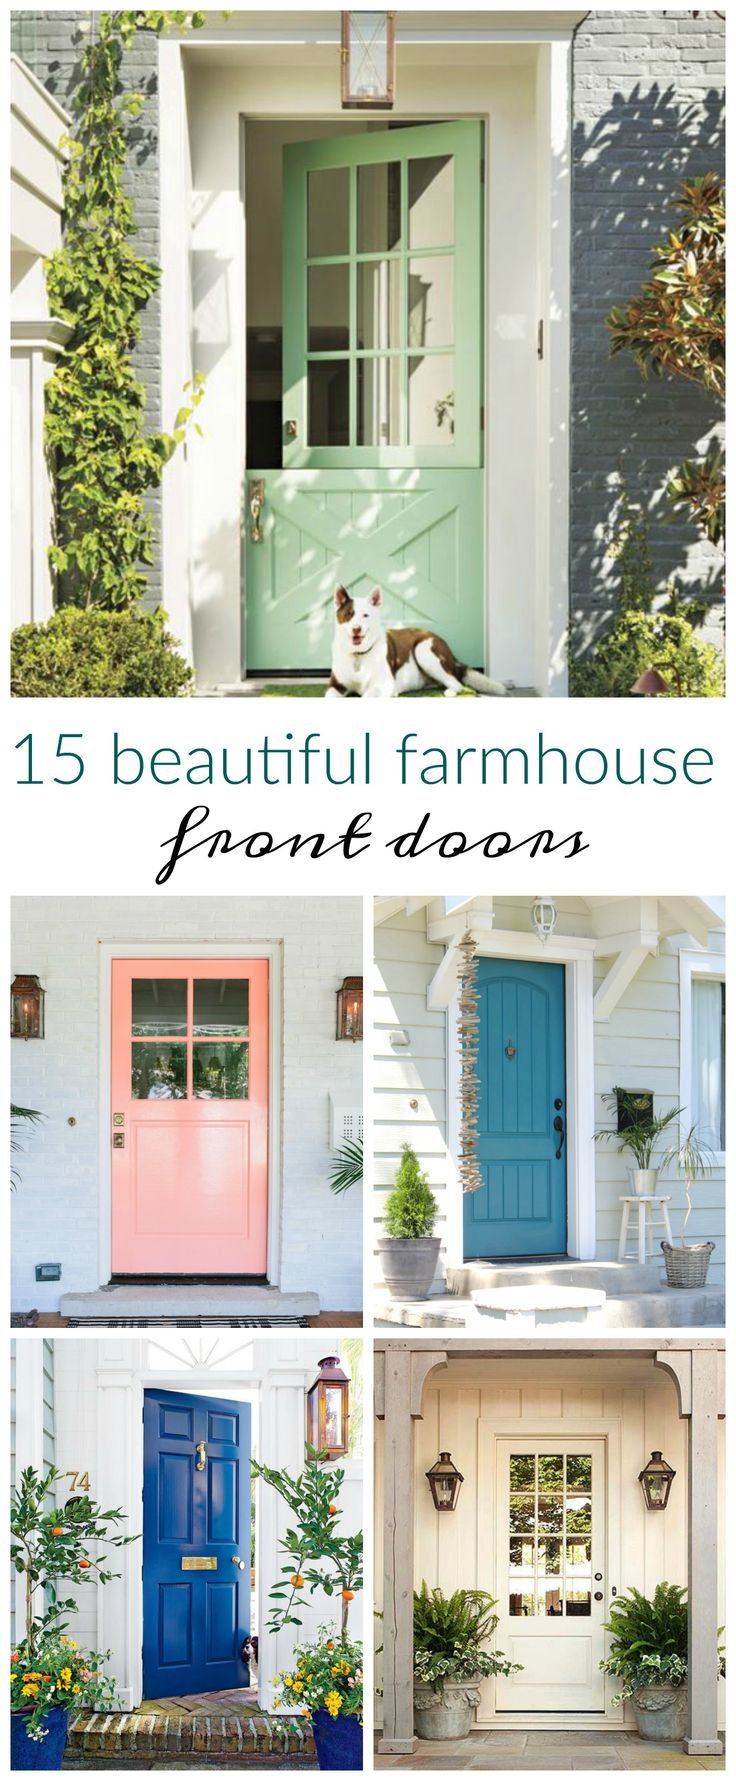 best 25+ farmhouse ideas on pinterest | farm house, farmhouse